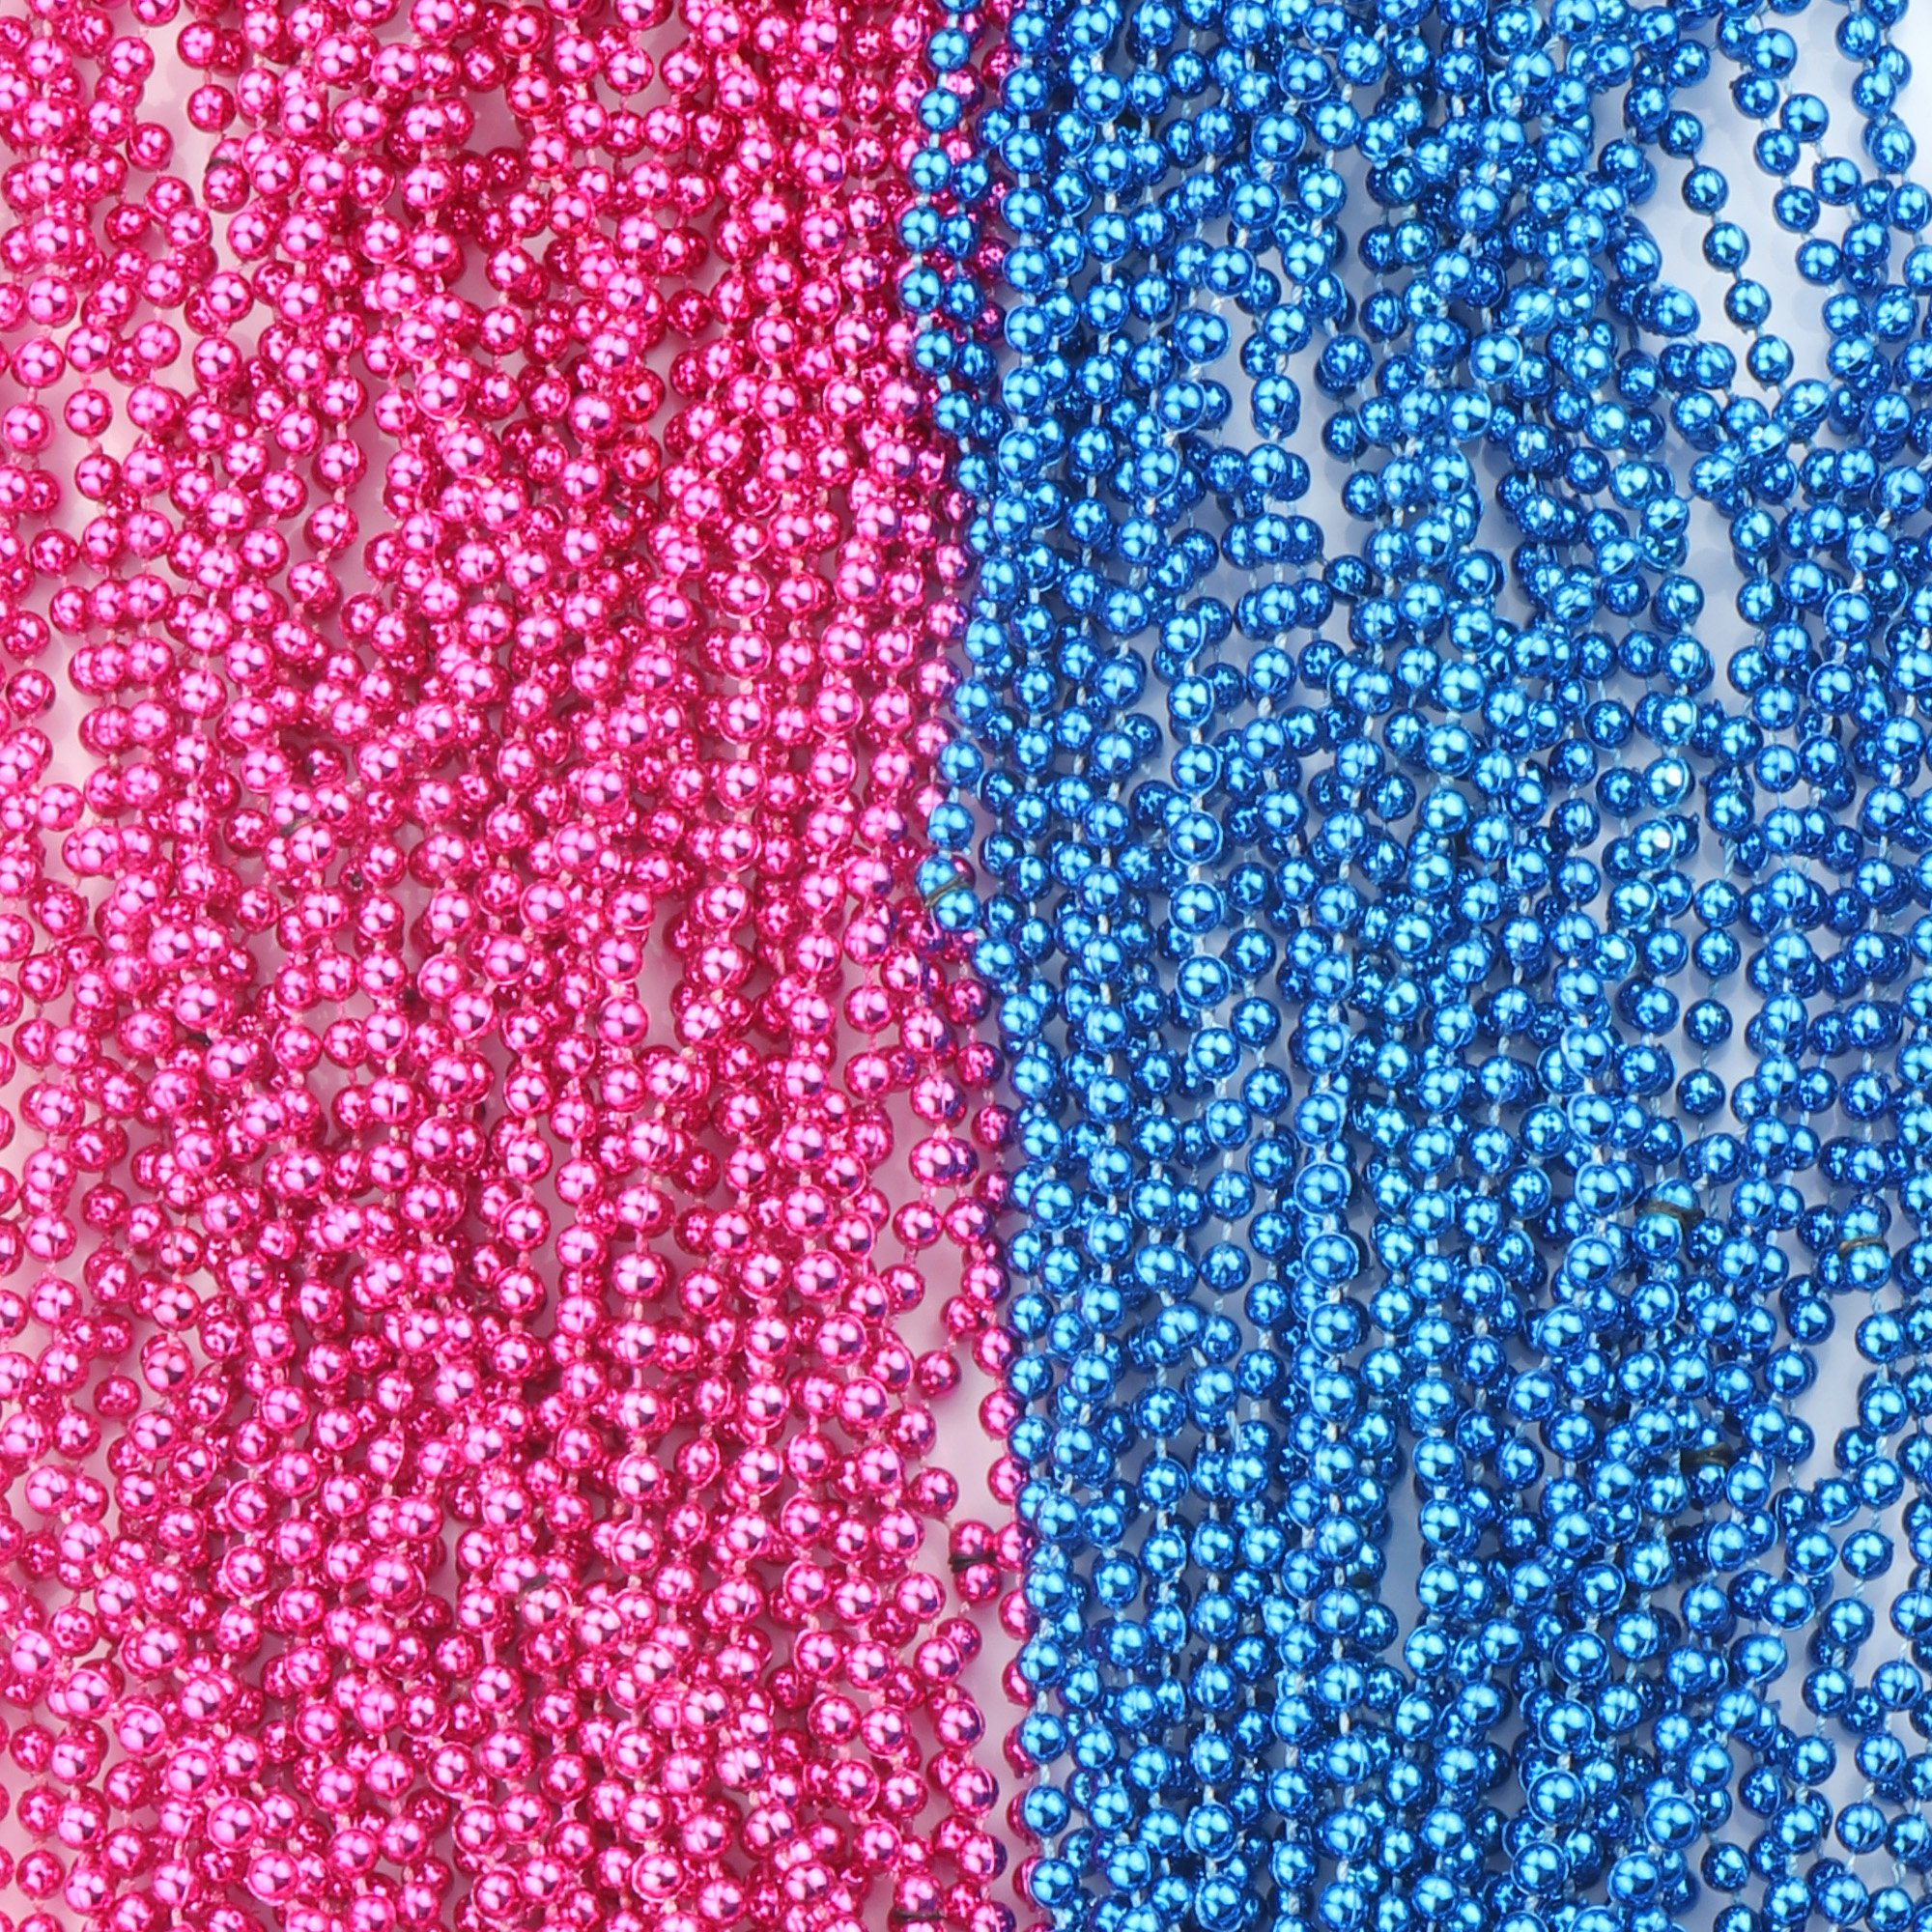 SOTOGO 50 Pcs Baby Gender Reveal Beads Baby Shower Announcement Party 4mm Round 30 inch